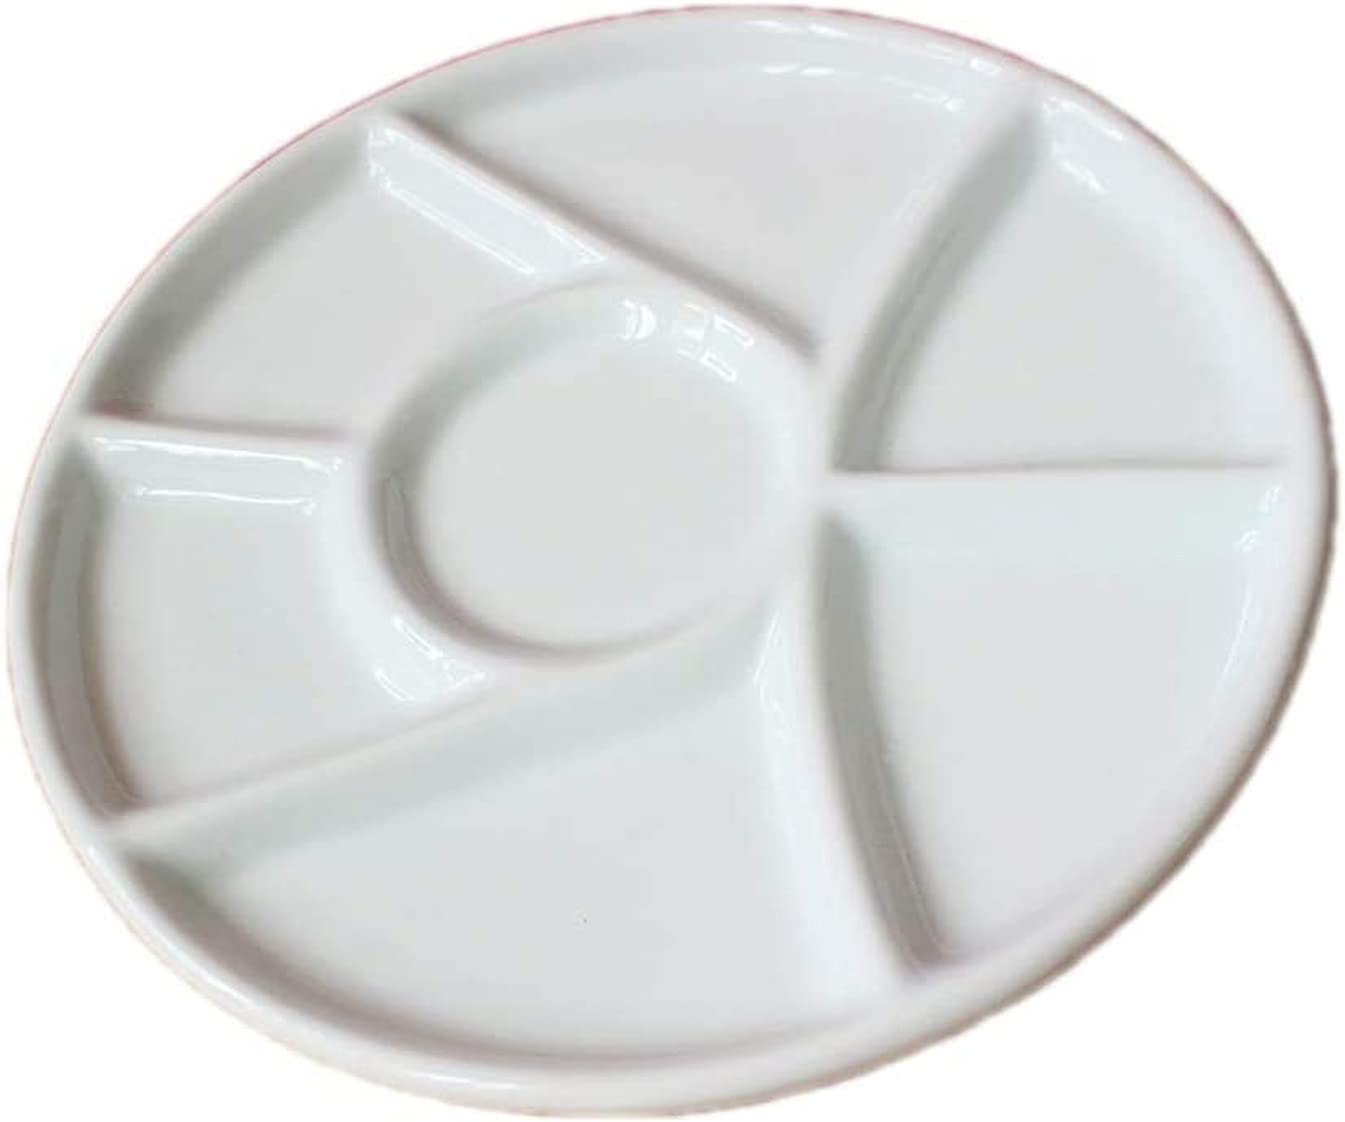 Gemerglity 6 Wells Ceramic Artist Paint Mail order Porcelain All items in the store Tray Watercolo